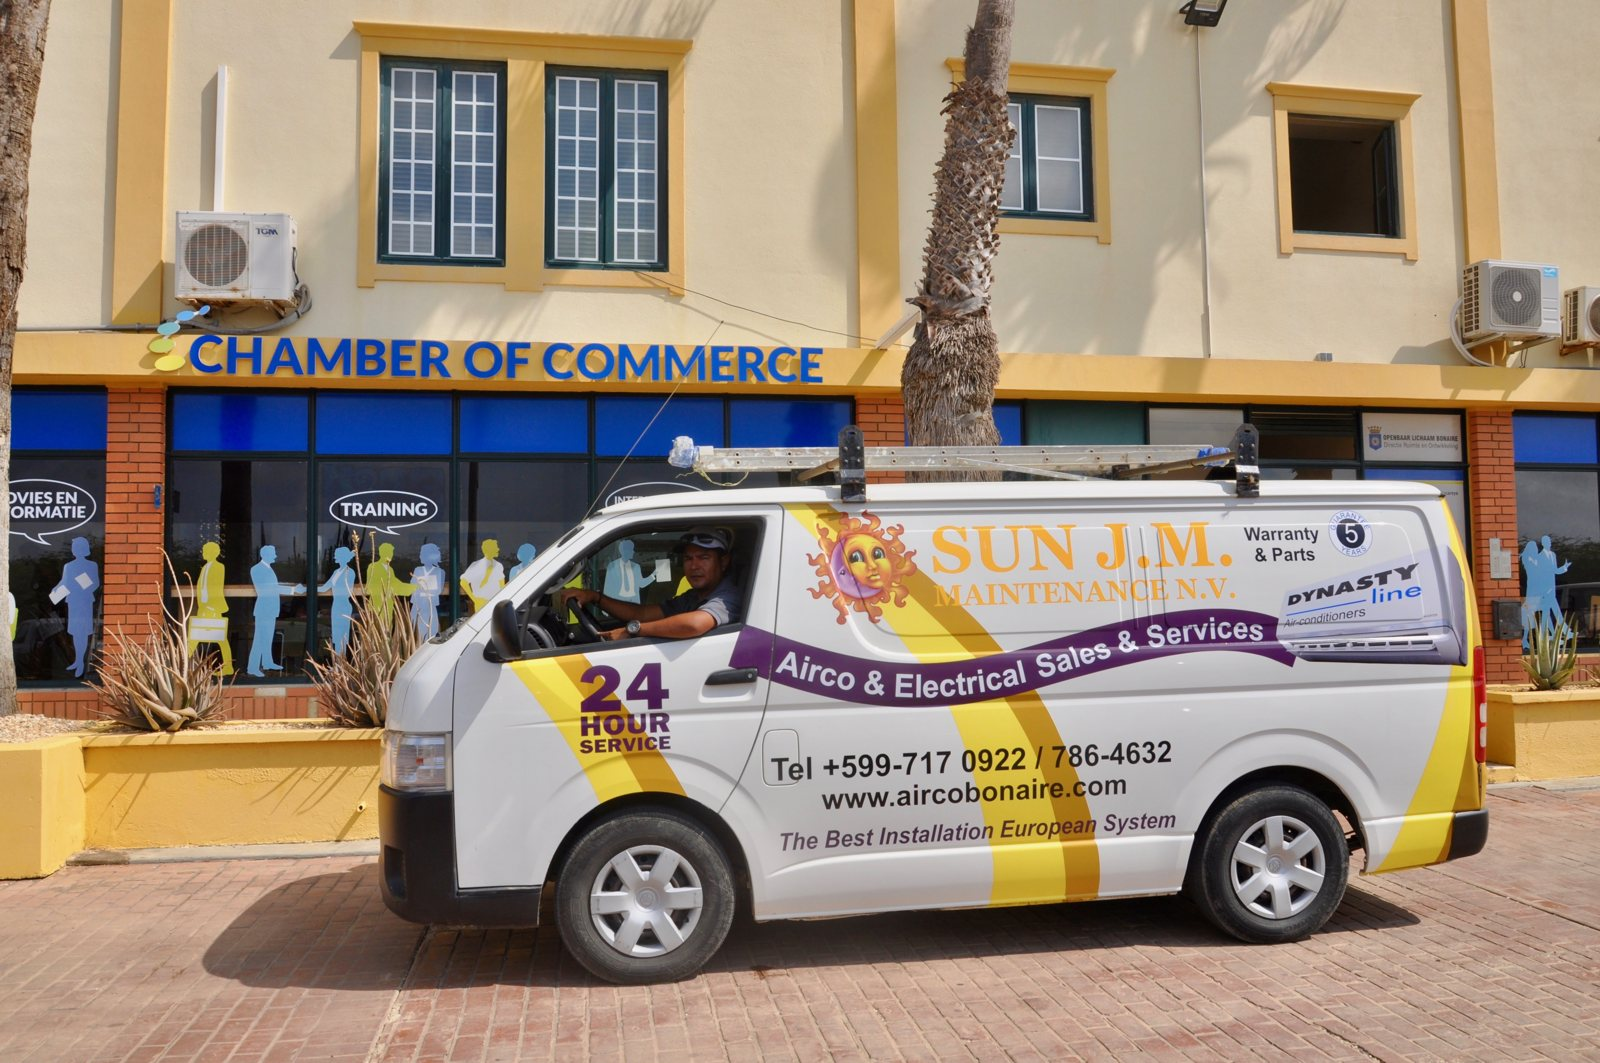 Airconditioning at the Chamber of Commerce Bonaire